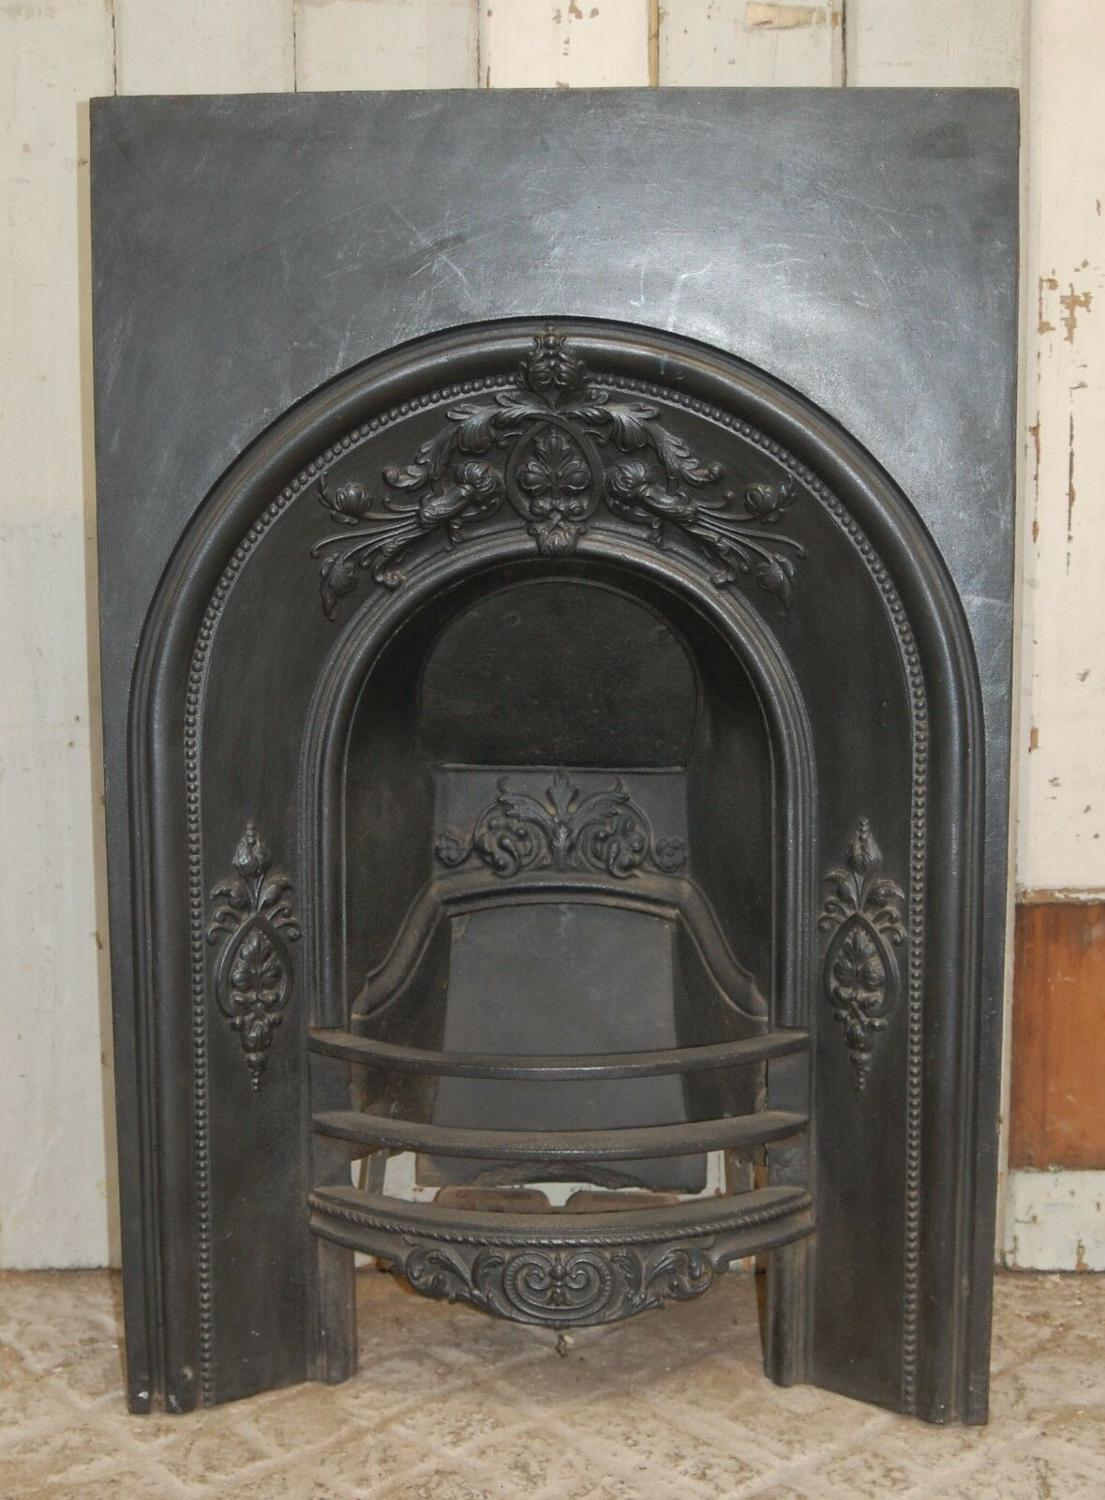 FI0024 AN ANTIQUE VICTORIAN CAST IRON BEDROOM FIRE INSERT